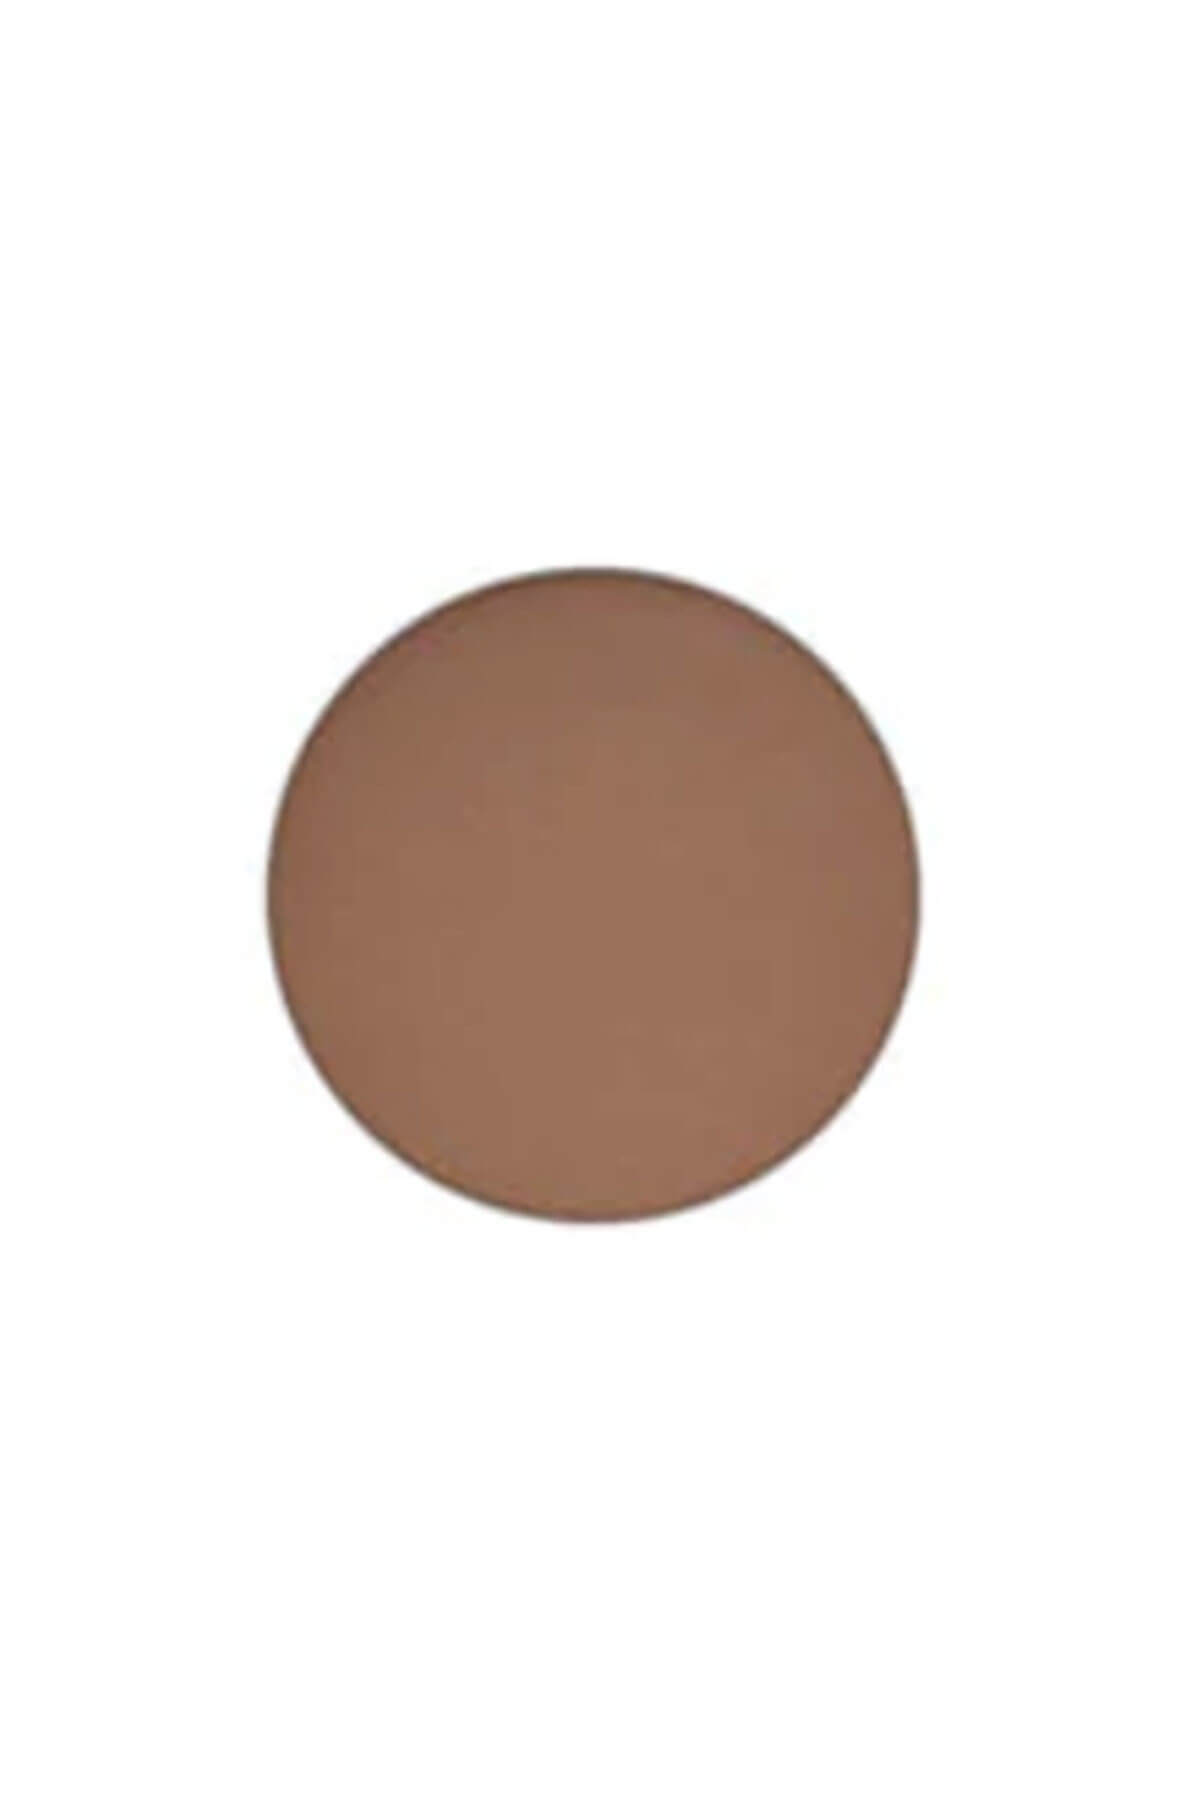 MAC Small Eye Shadow Refill Pan - Espresso 1.5g/0.05oz